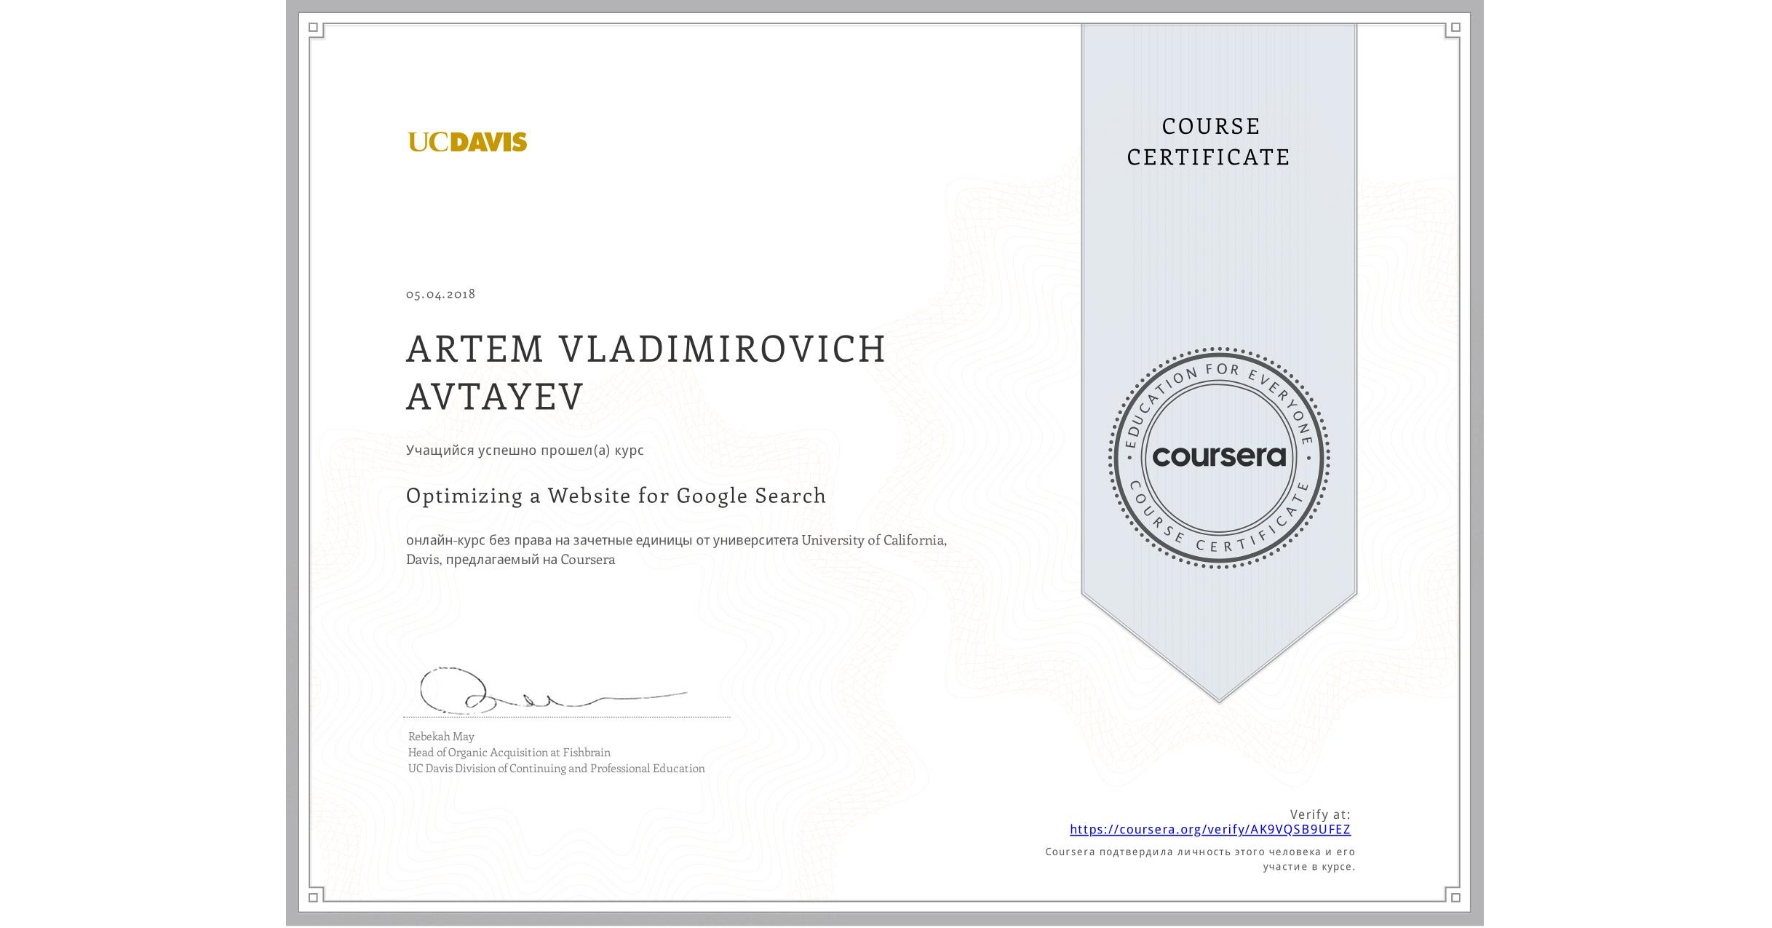 View certificate for ARTEM VLADIMIROVICH  AVTAYEV, Optimizing a Website for Search, an online non-credit course authorized by University of California, Davis and offered through Coursera